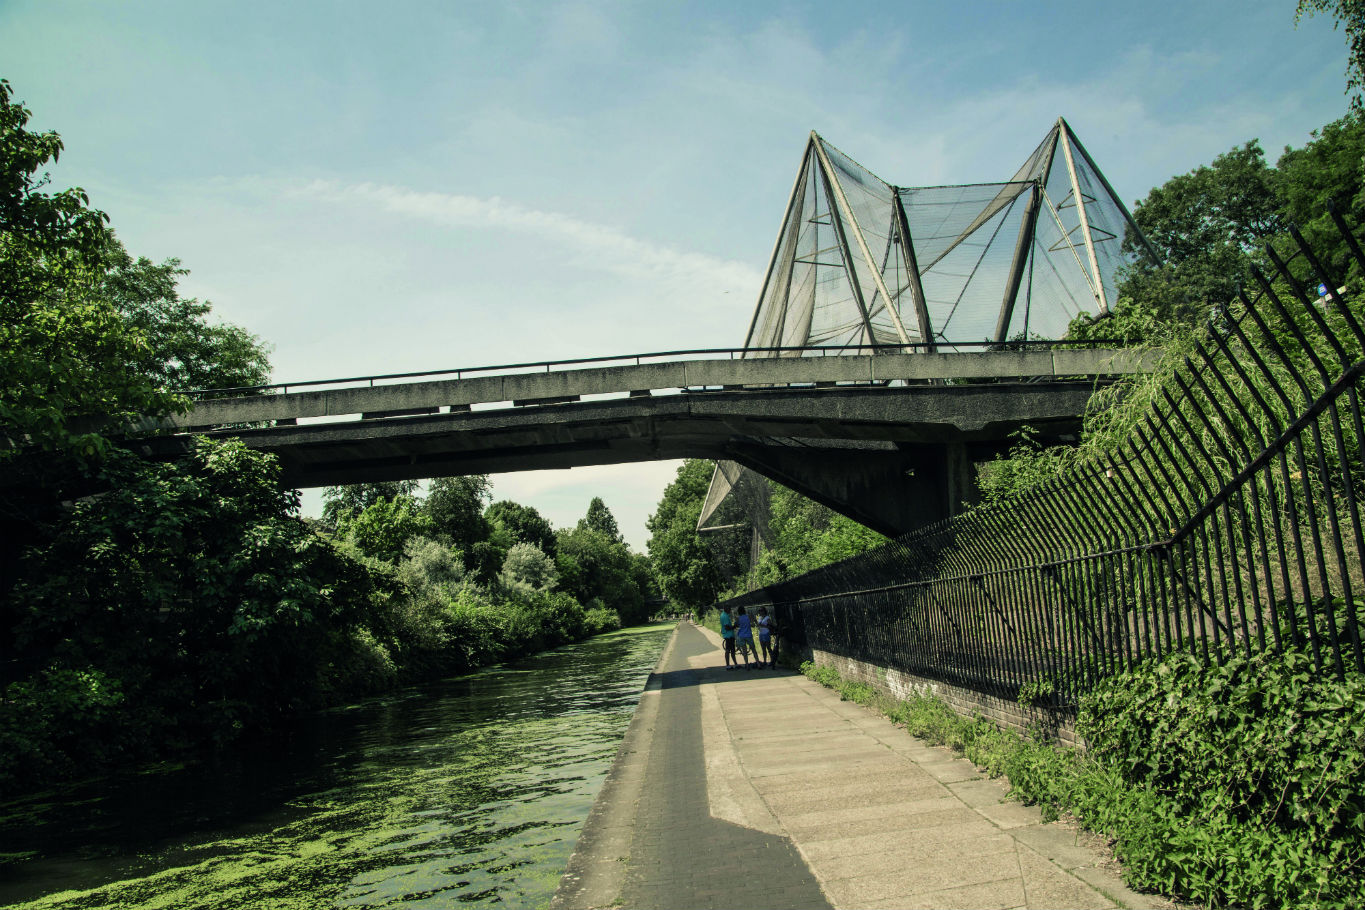 Canal towpath by London Zoo